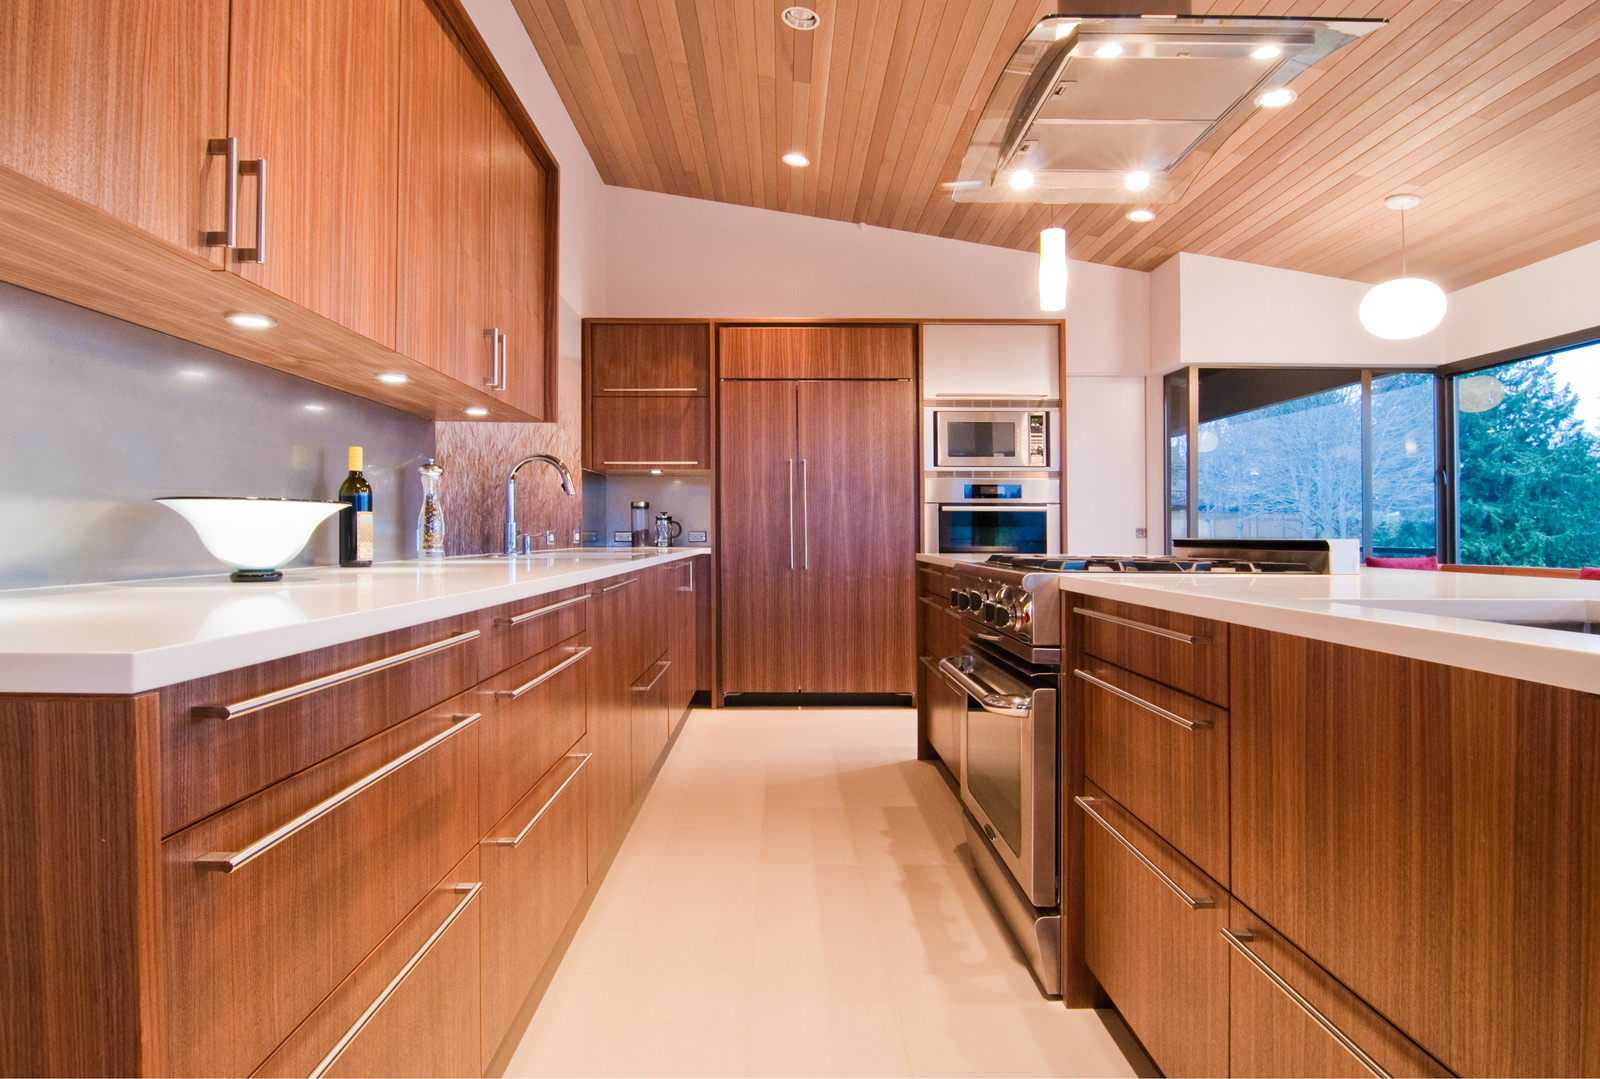 Modern Kitchen Plans dazzling modern kitchen design image id 46 Build Llc West Seattle Kitchen 1